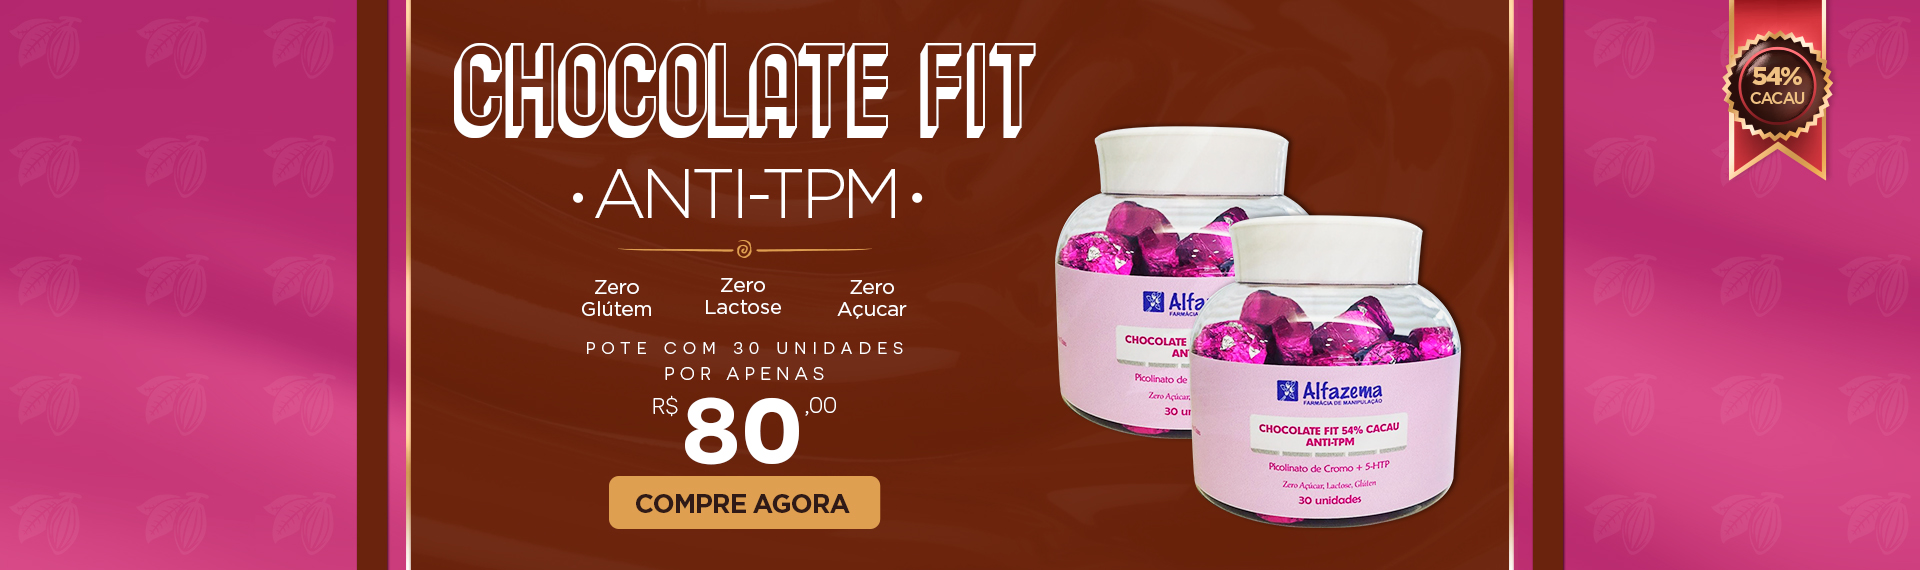 Chocolate FIt Anti-TPM